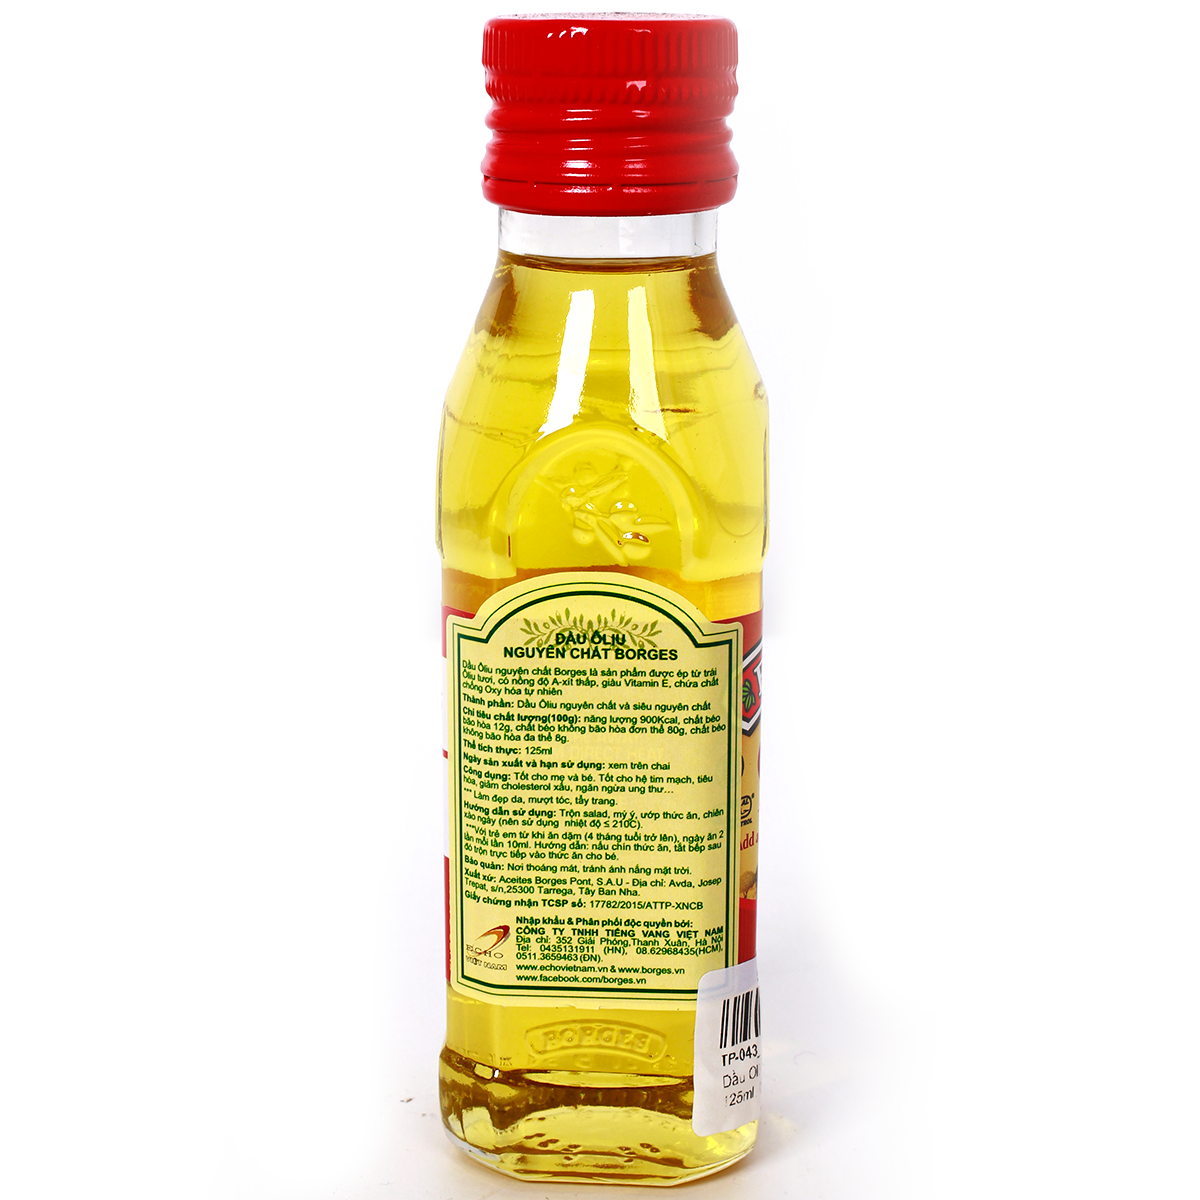 Dau oliu Borges nguyen chat 125ml